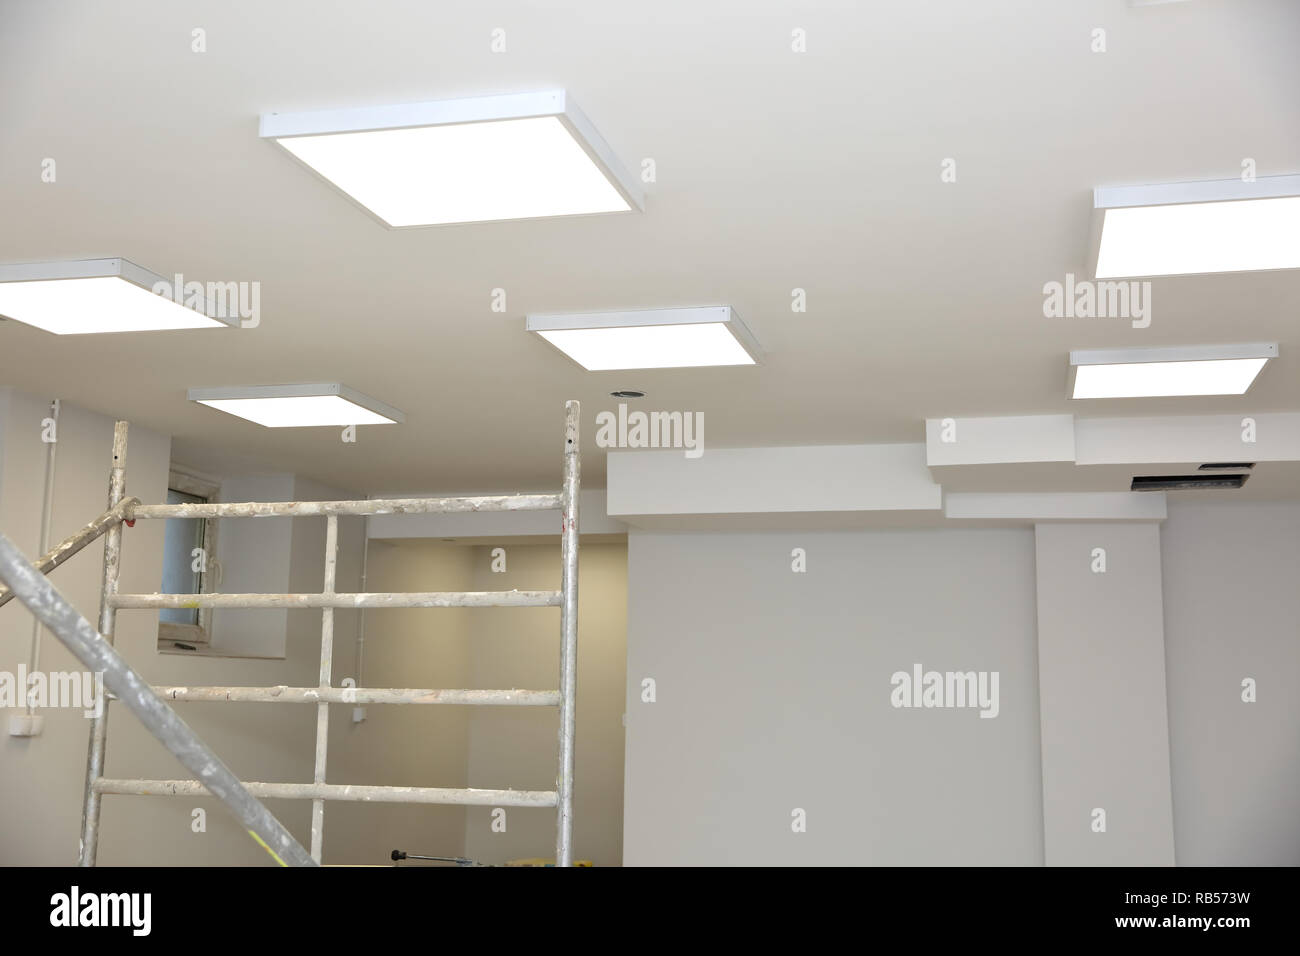 Eclairage Led Au Plafond Eclairage Led Plafond